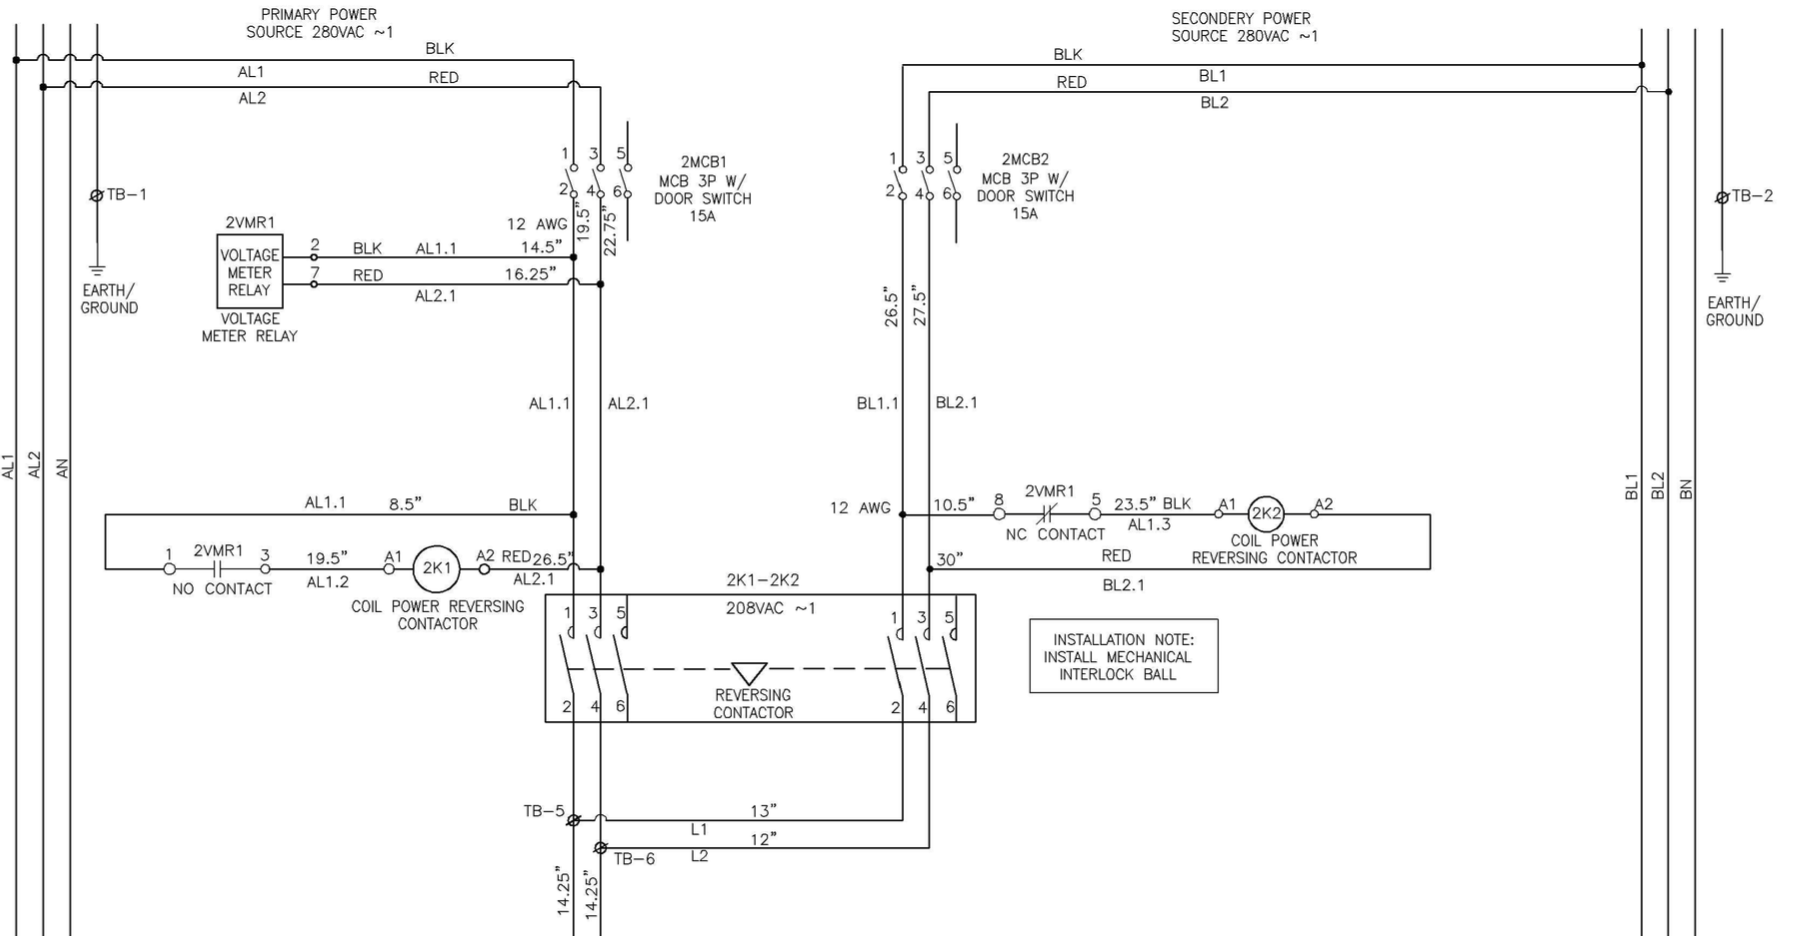 single phase reversing contactor wiring diagram 2001 chrysler pt cruiser radio power automatic transfer switch vs using a